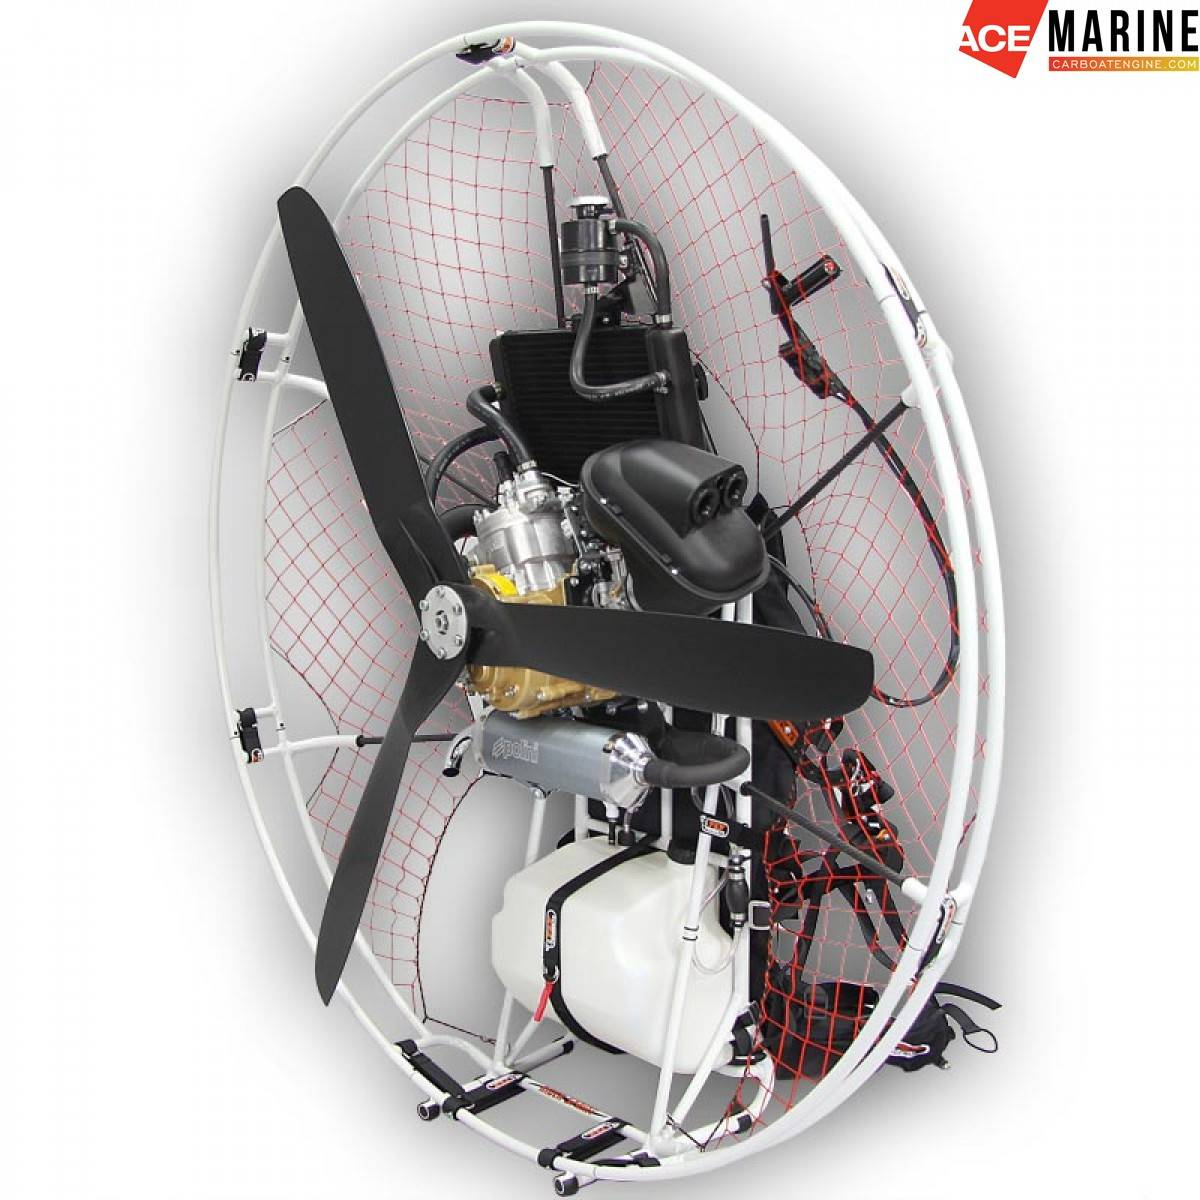 FLY PRODUCTS RIDER SERIES PARAMOTOR